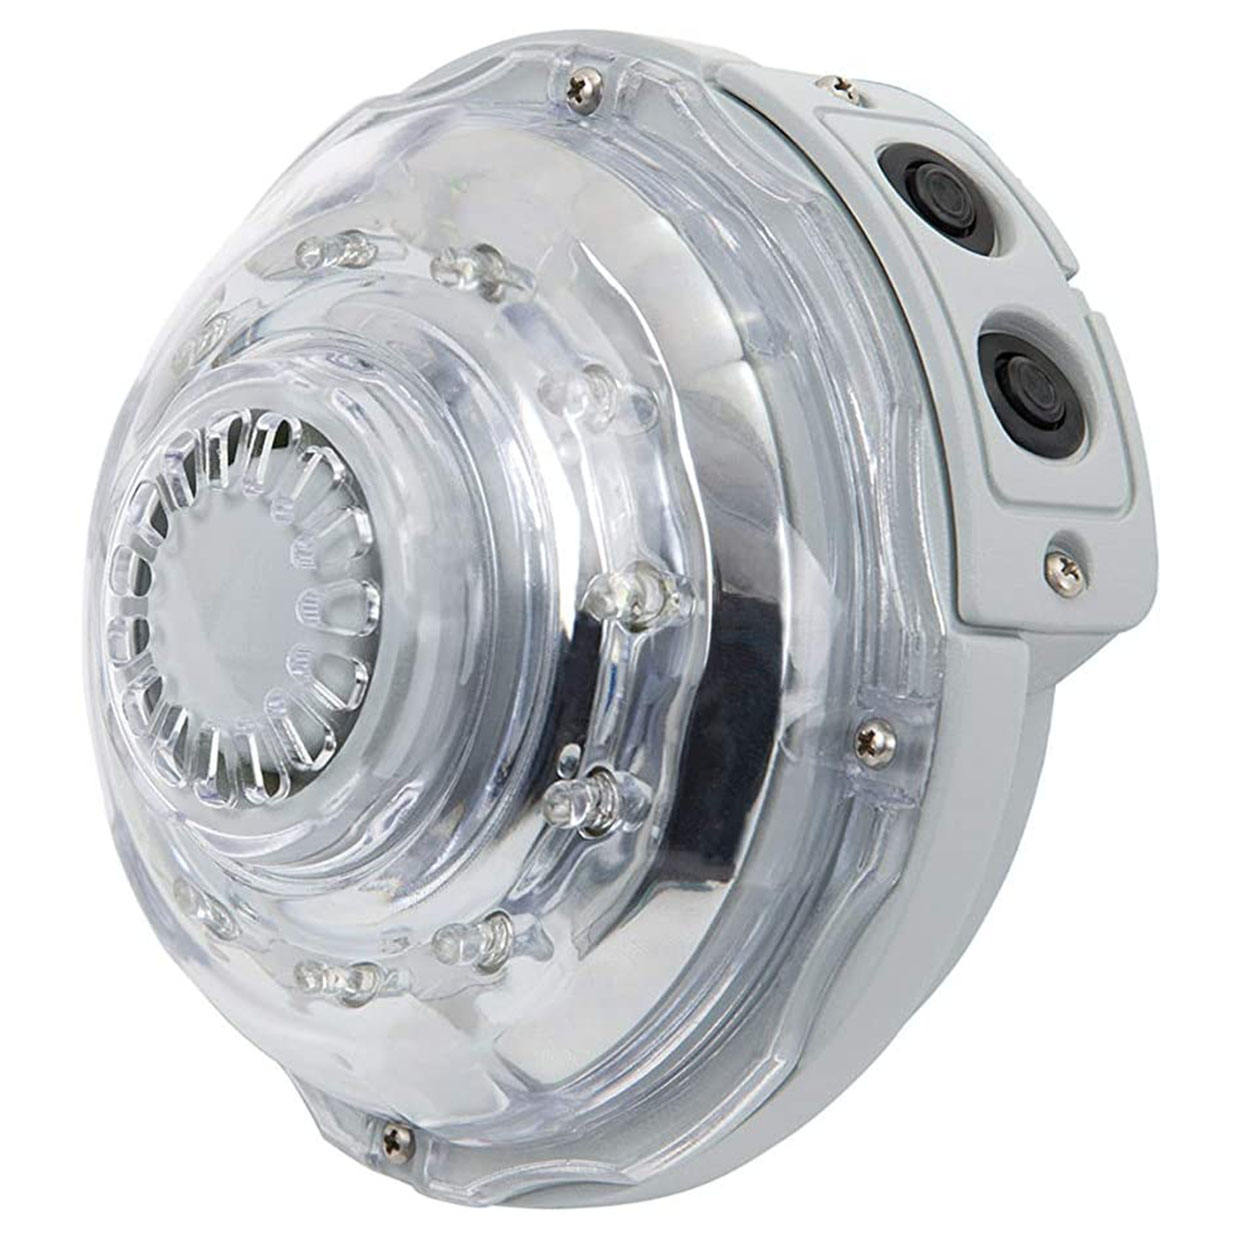 Intex 28504 LED Light With Hydroelectric Power for Combo Spa